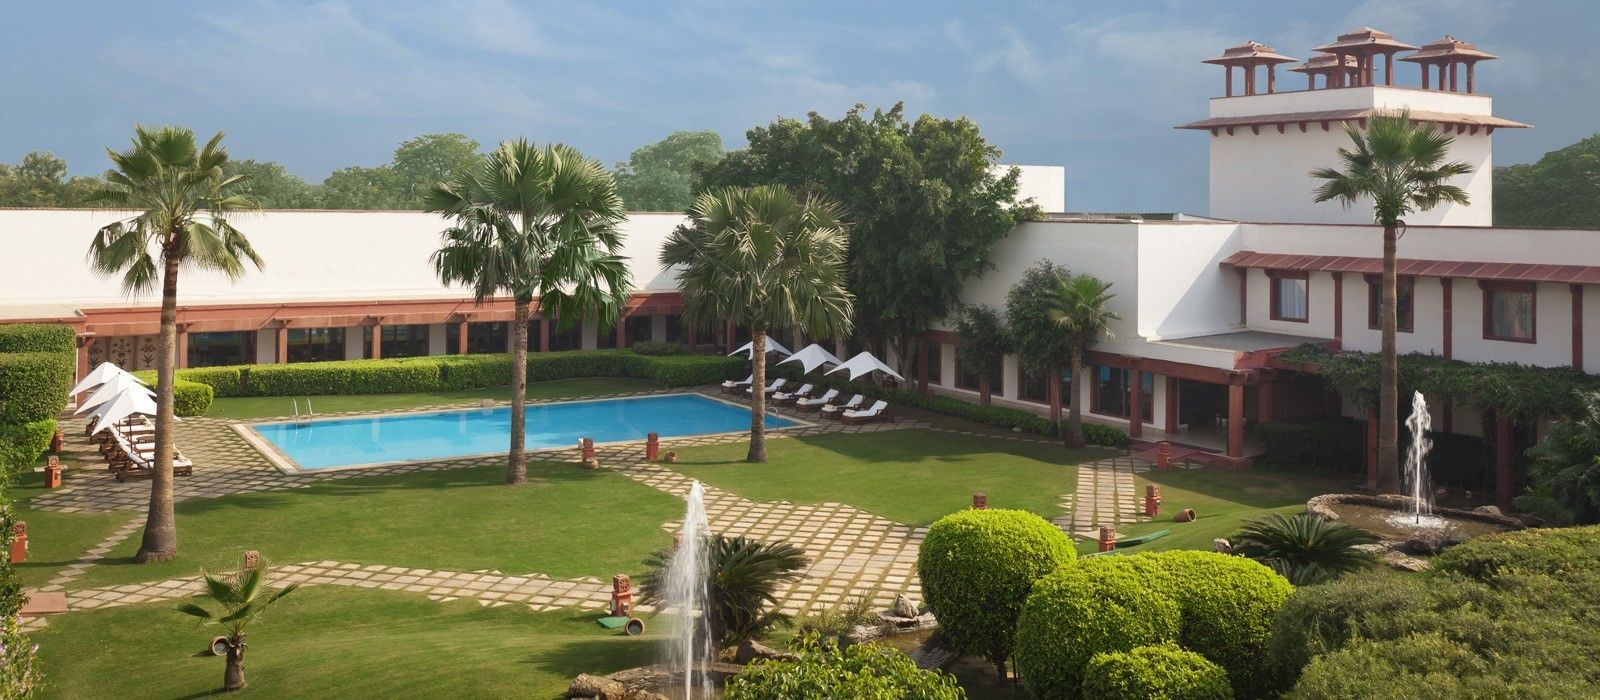 Hotel The Trident Agra Nordindien